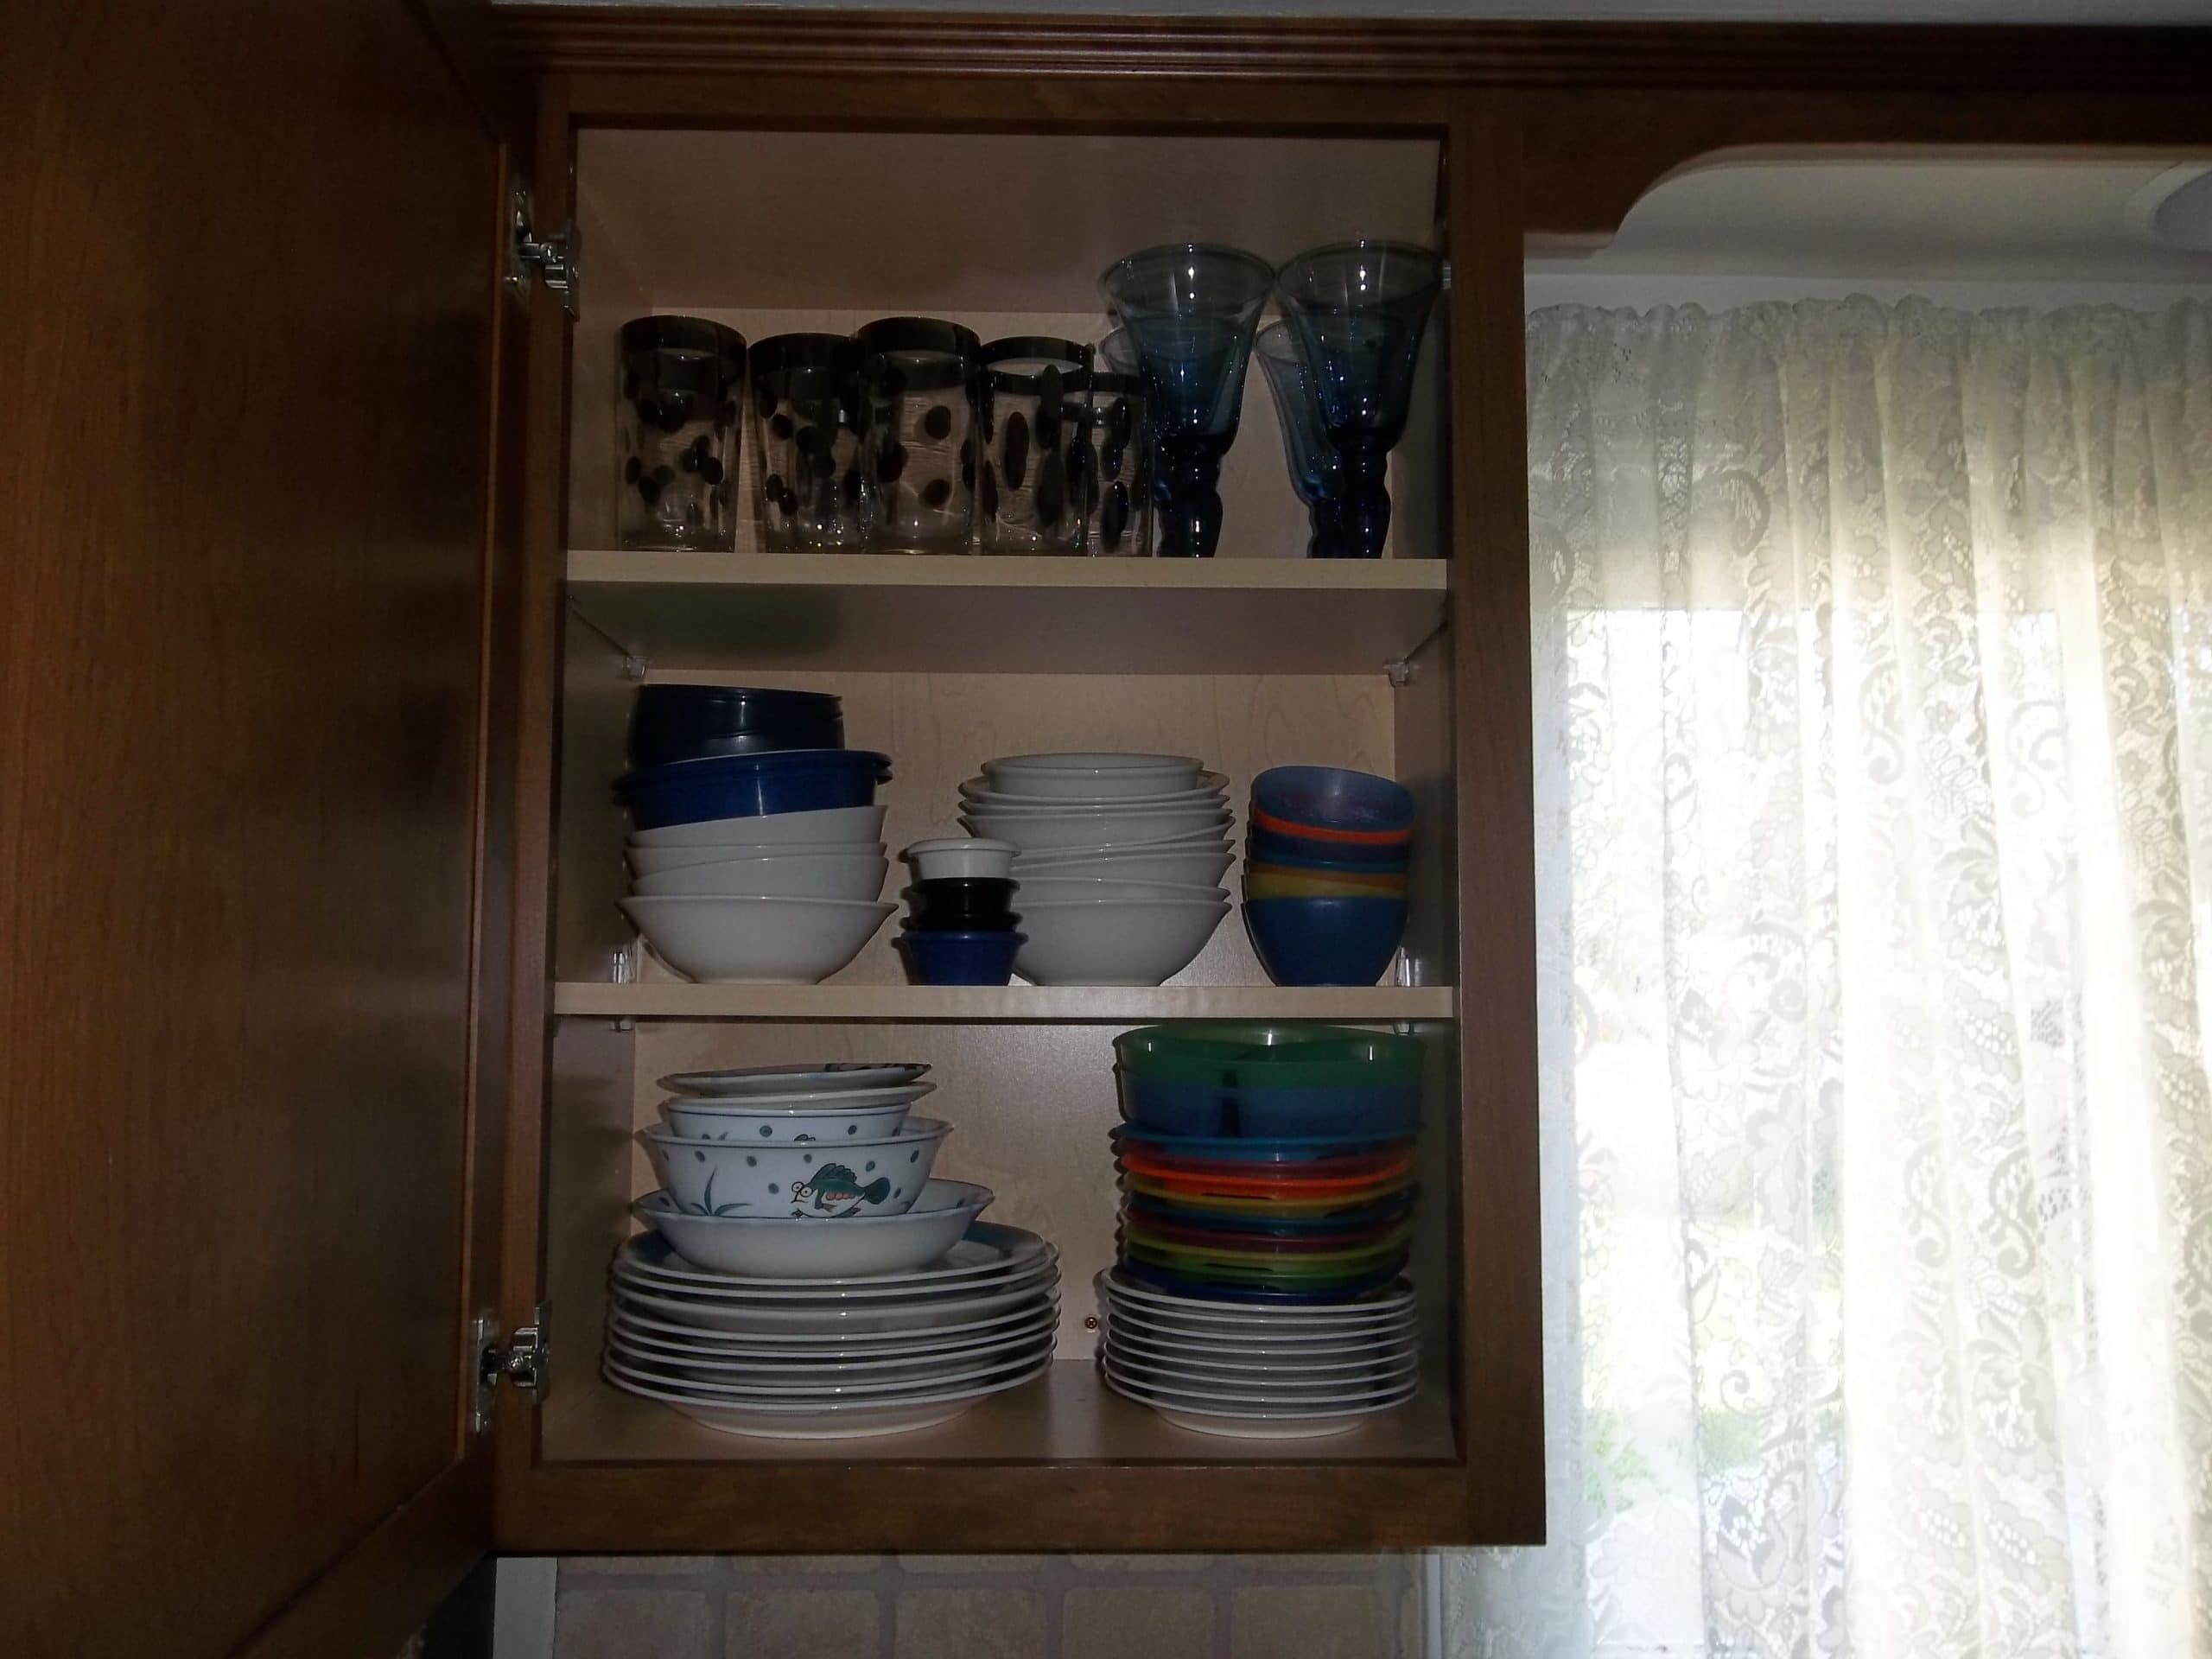 A disorganized mess of plates in our cabinet before we organized them. & Organize Kitchen Cabinets: How We Got Rid of 99 Dishes! ? YBKitchen